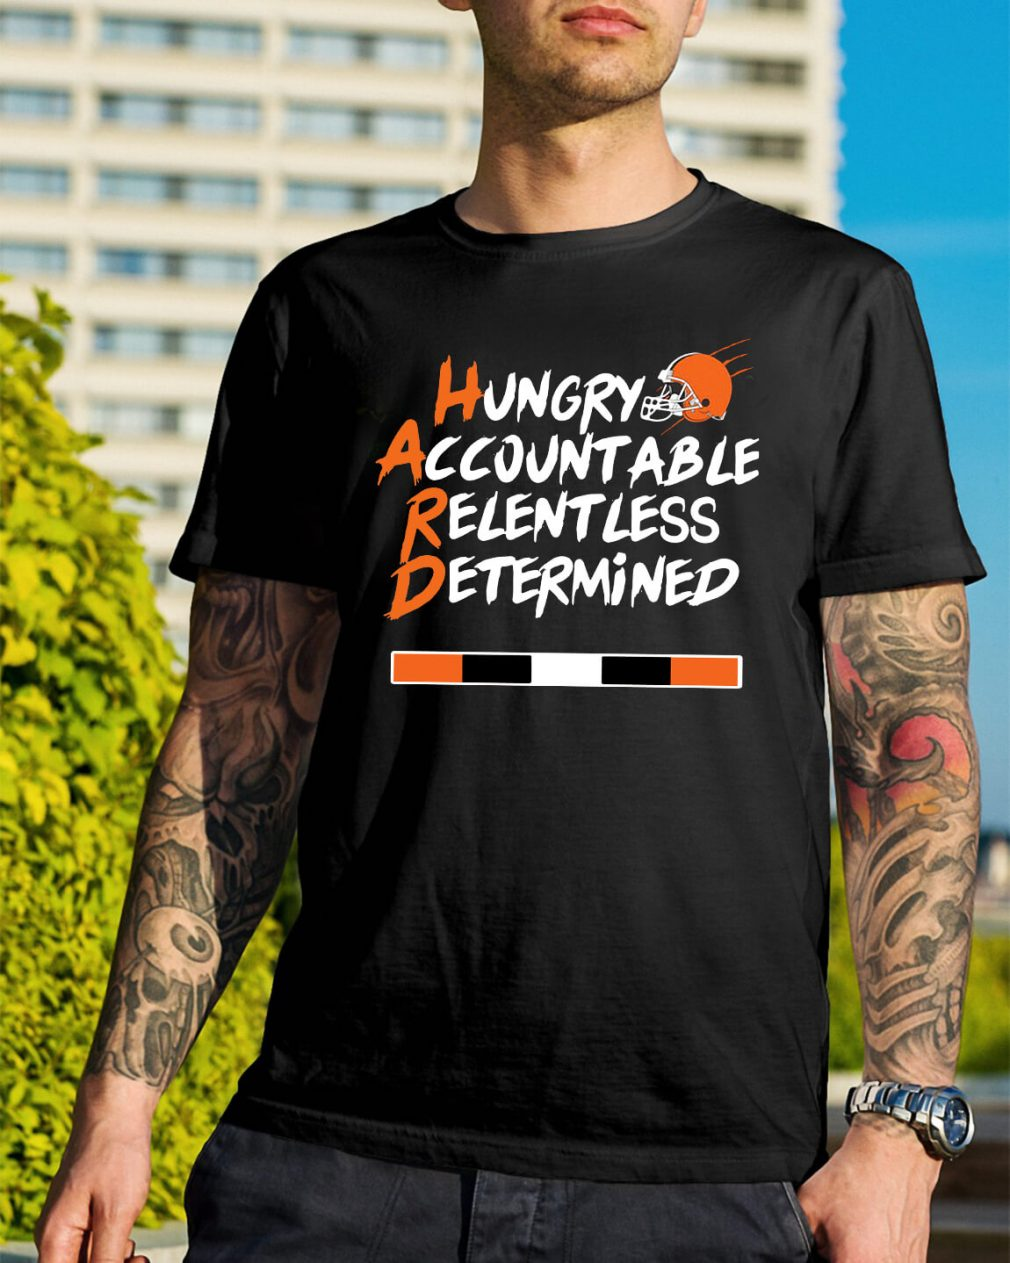 Hard hungry accountable relentless determined shirt